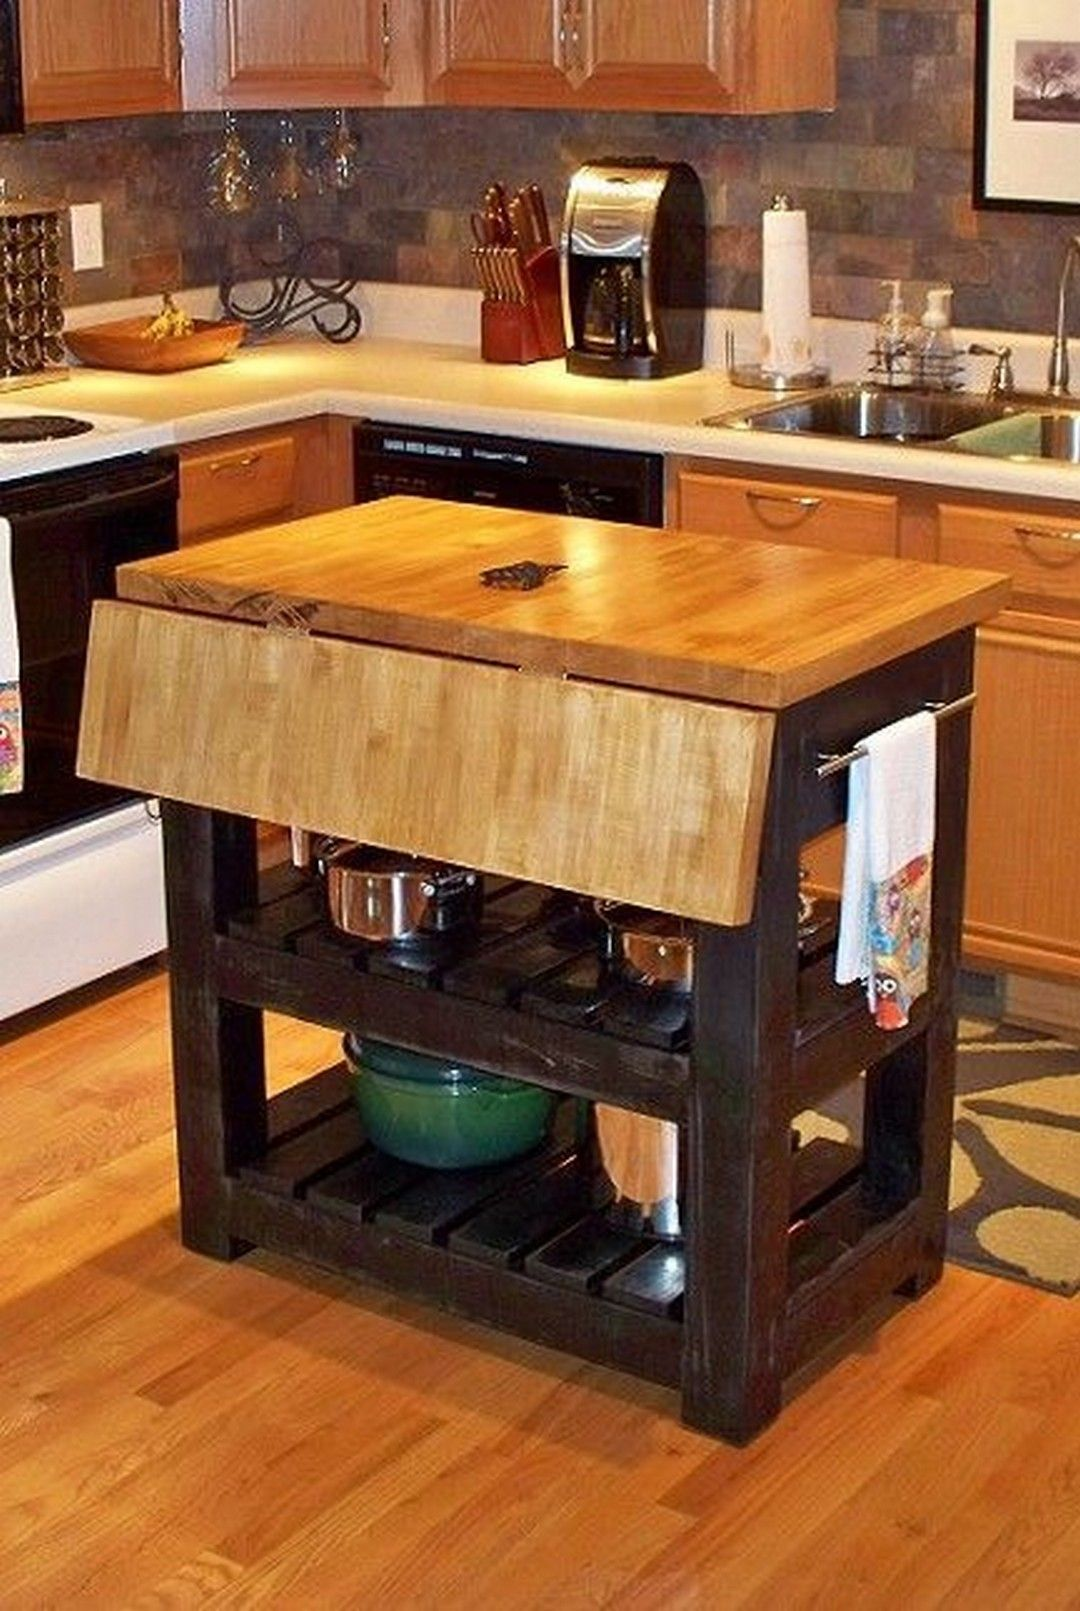 Brilliant Small Kitchen Island Diys Kitchen Design Small Small Kitchen Tables Mobile Kitchen Island